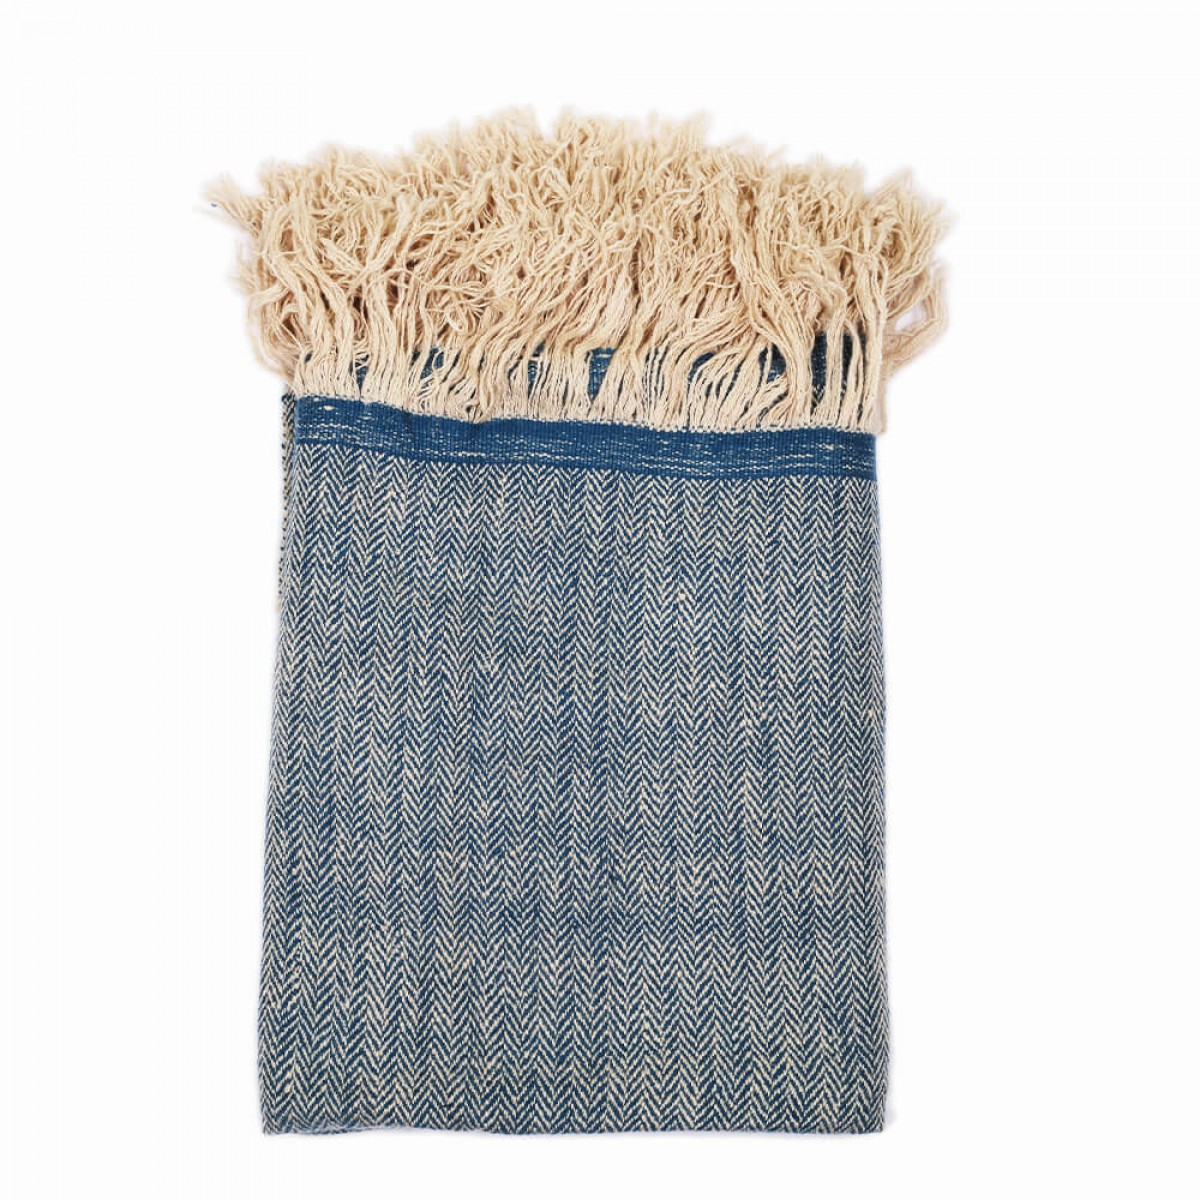 Cashmere Throw in Herringbone Weave - Blue (Made to Order)